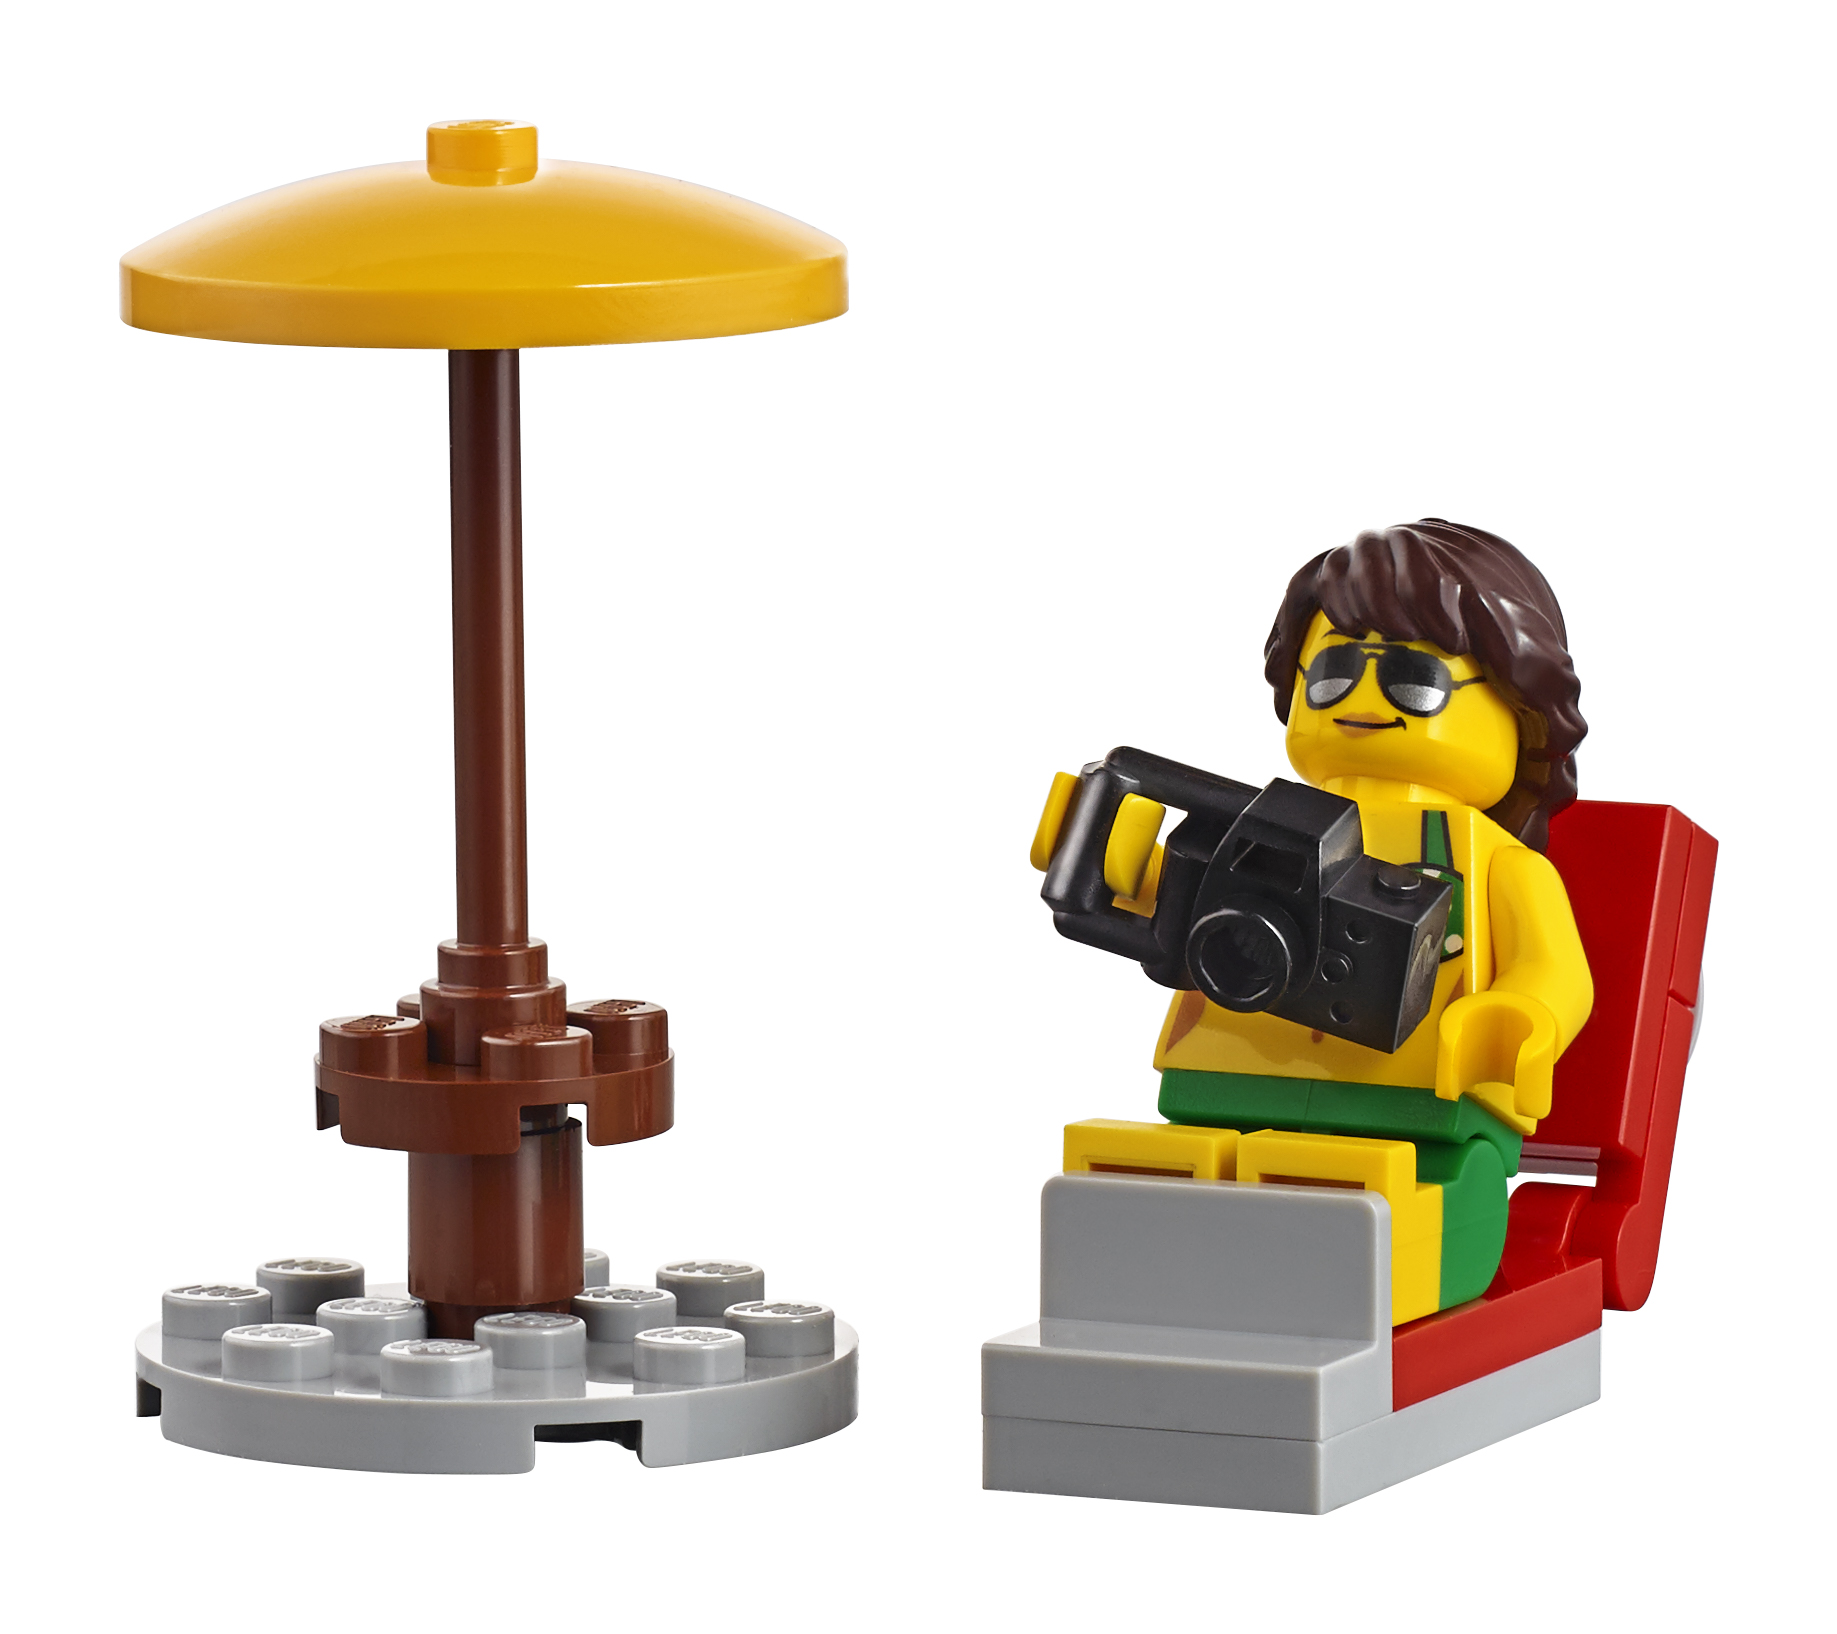 NEW LEGO GIRL MINIFIGURE WITH SAND CASTLE FROM 60153 FUN AT THE BEACH